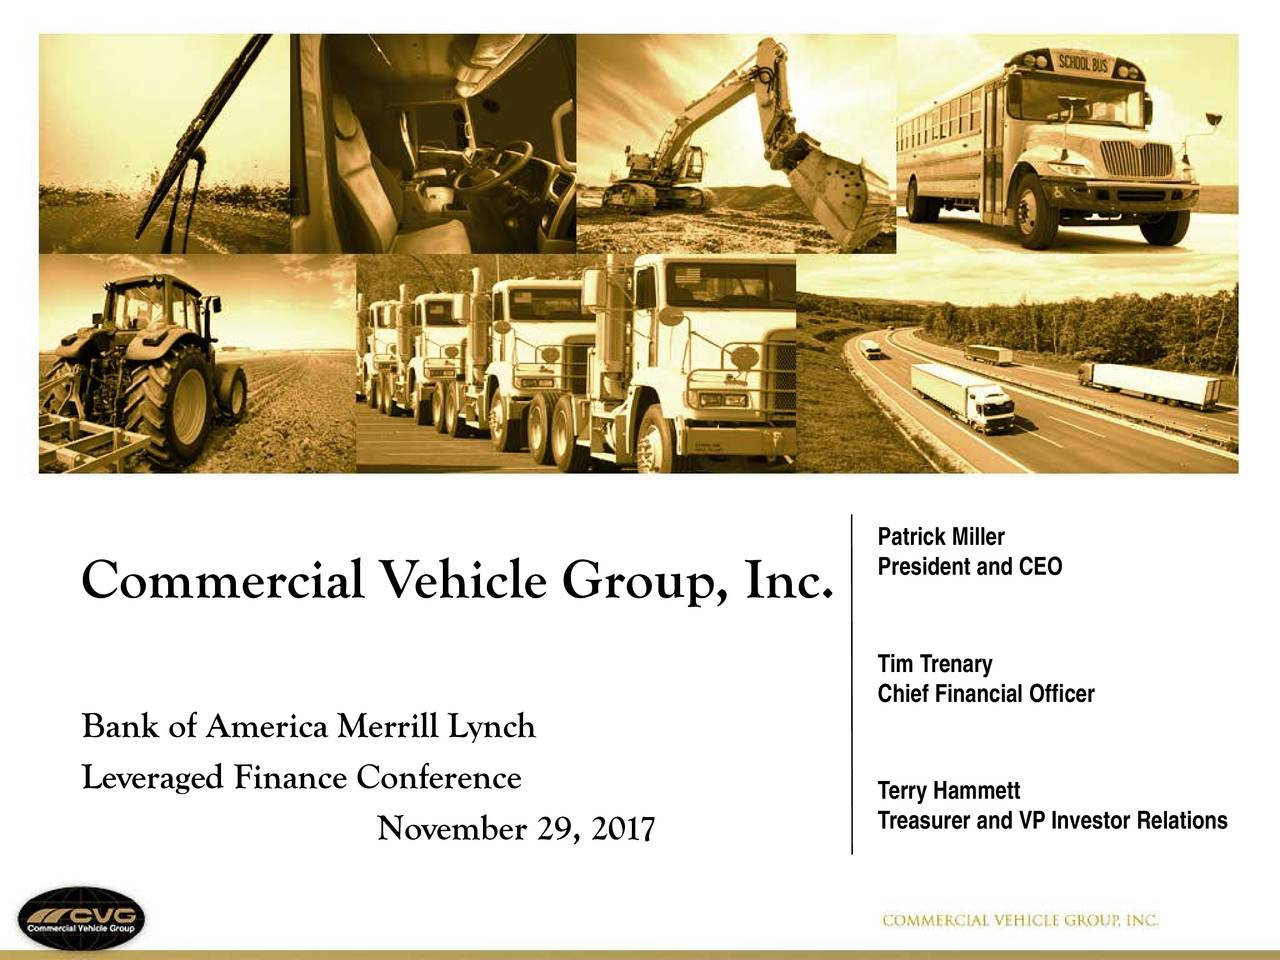 President and CEO Commercial Vehicle Group, Inc. Tim Trenary Chief Financial Officer Bank of America Merrill Lynch Leveraged Finance Conference Terry Hammett November 29, 2017 Treasurer and VP Investor Relations